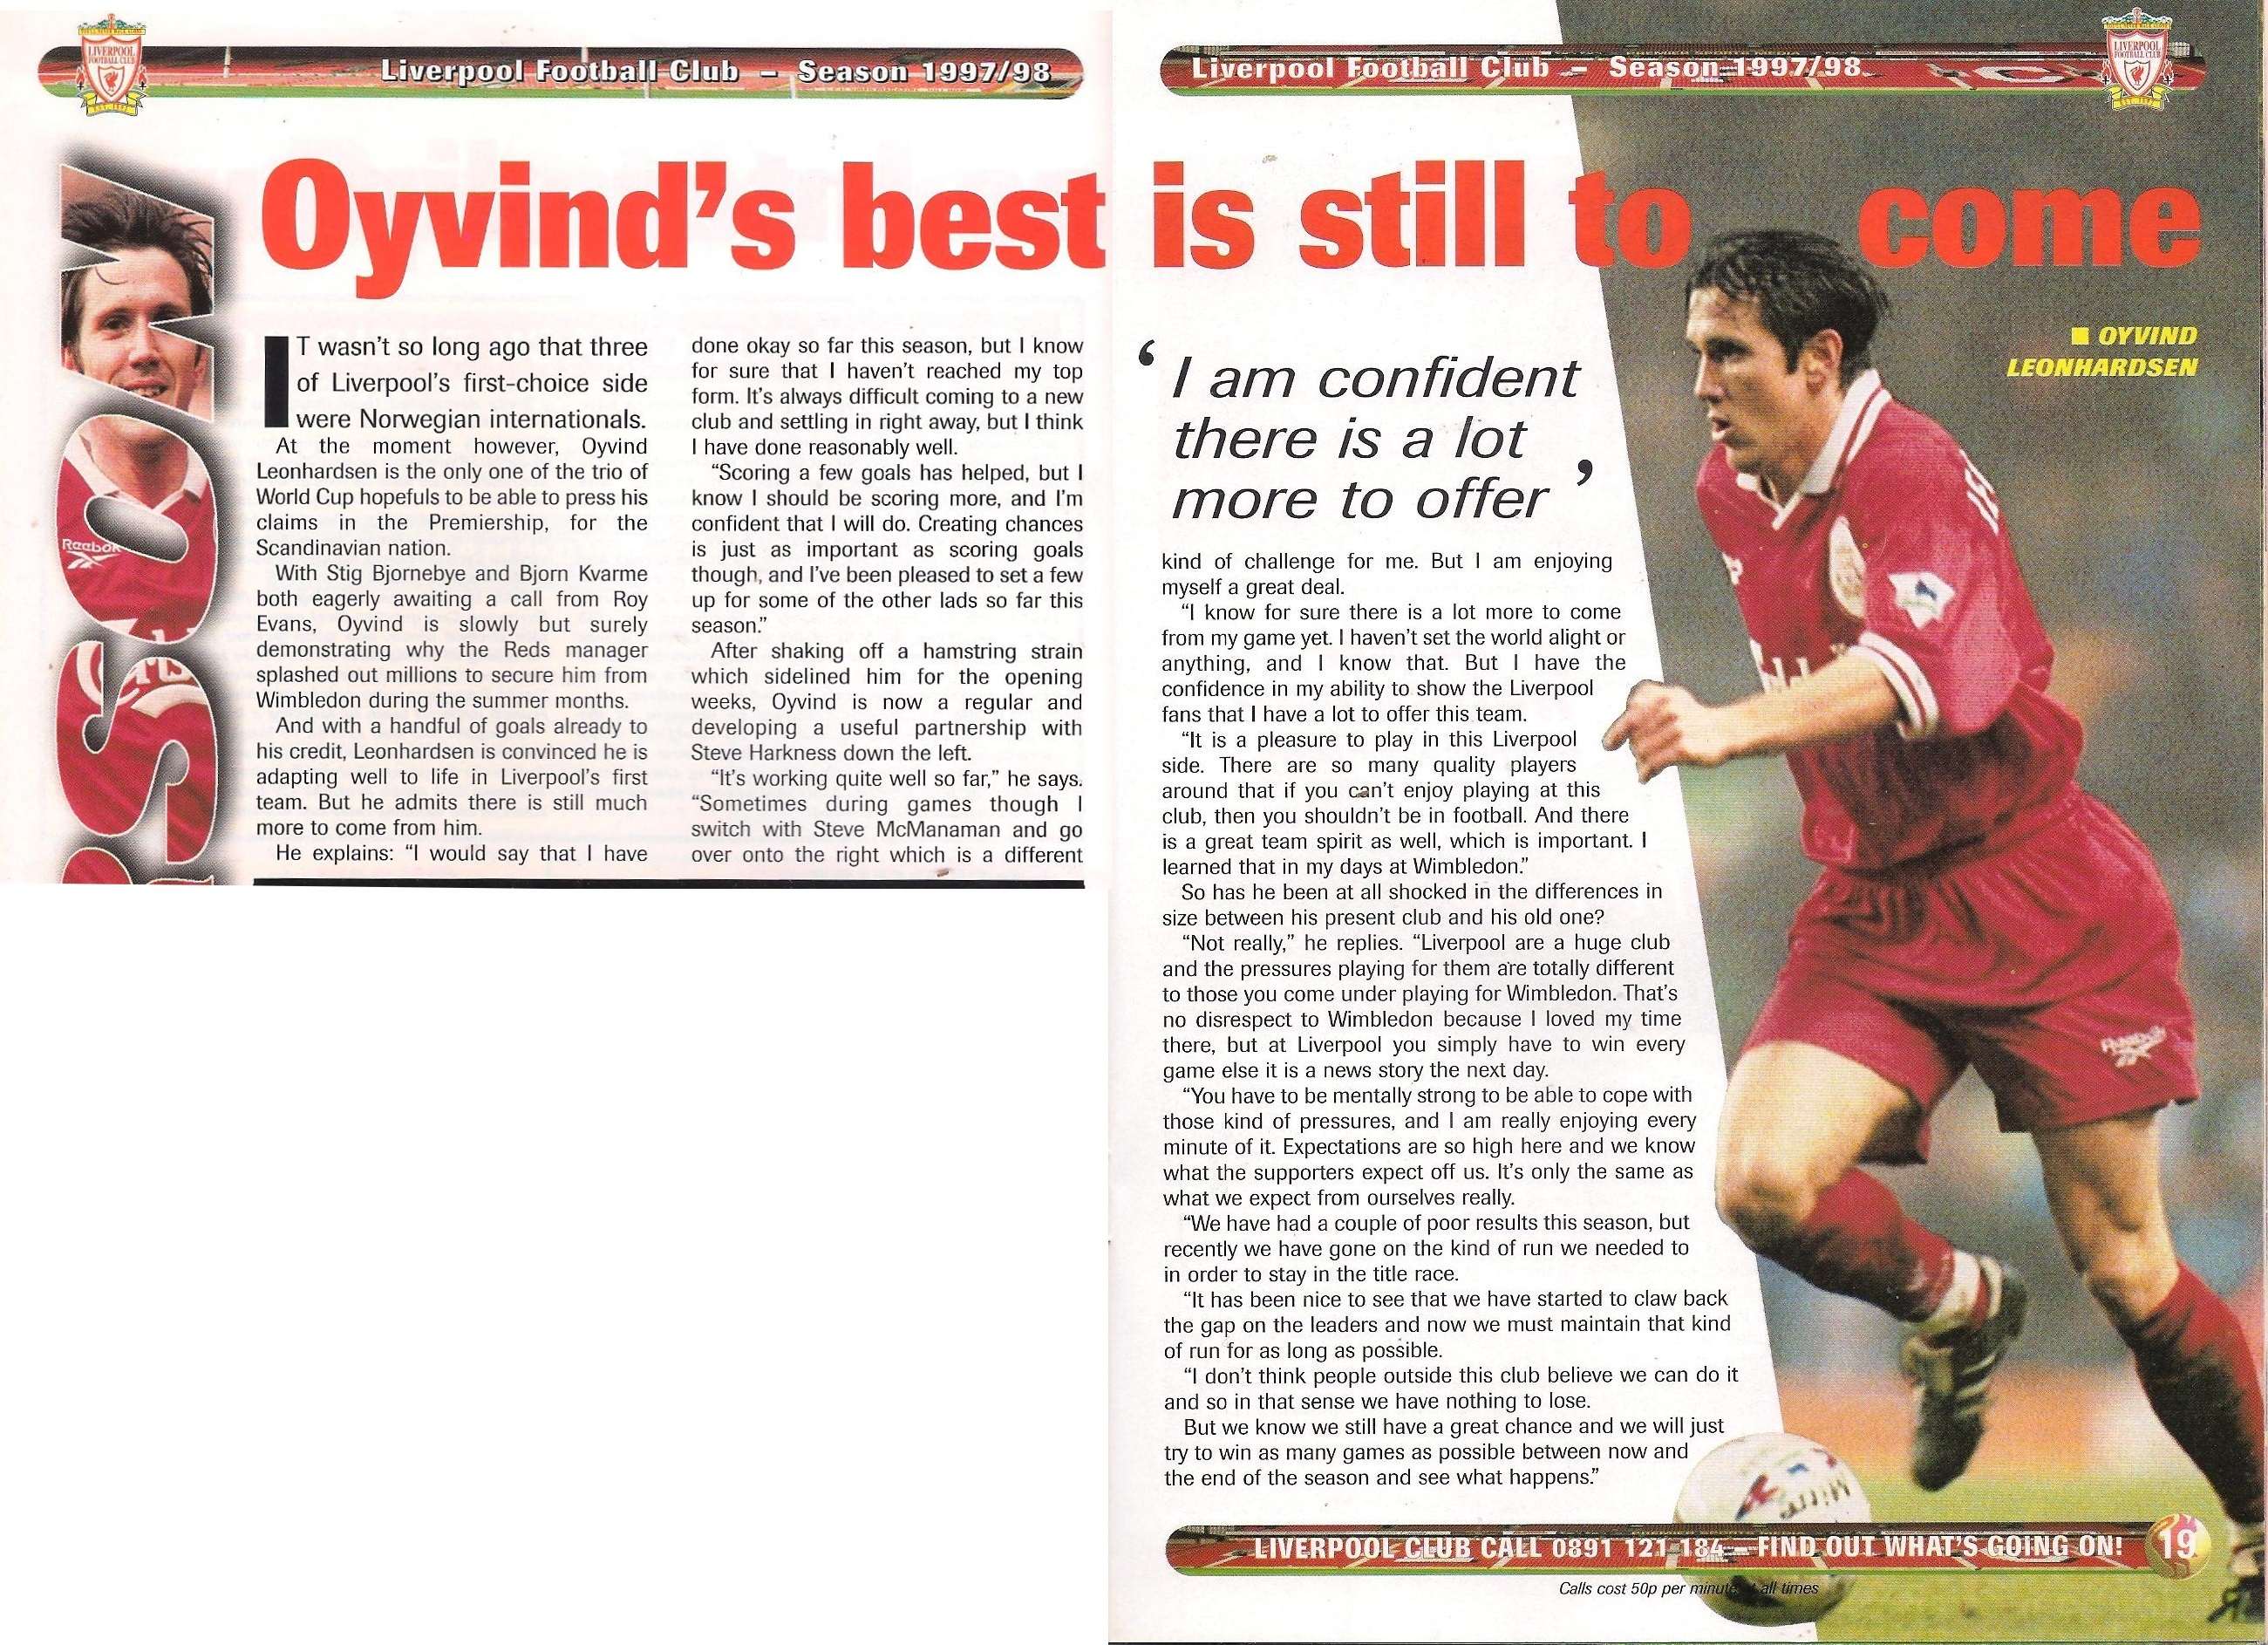 Oyvind's best is still yet to come!